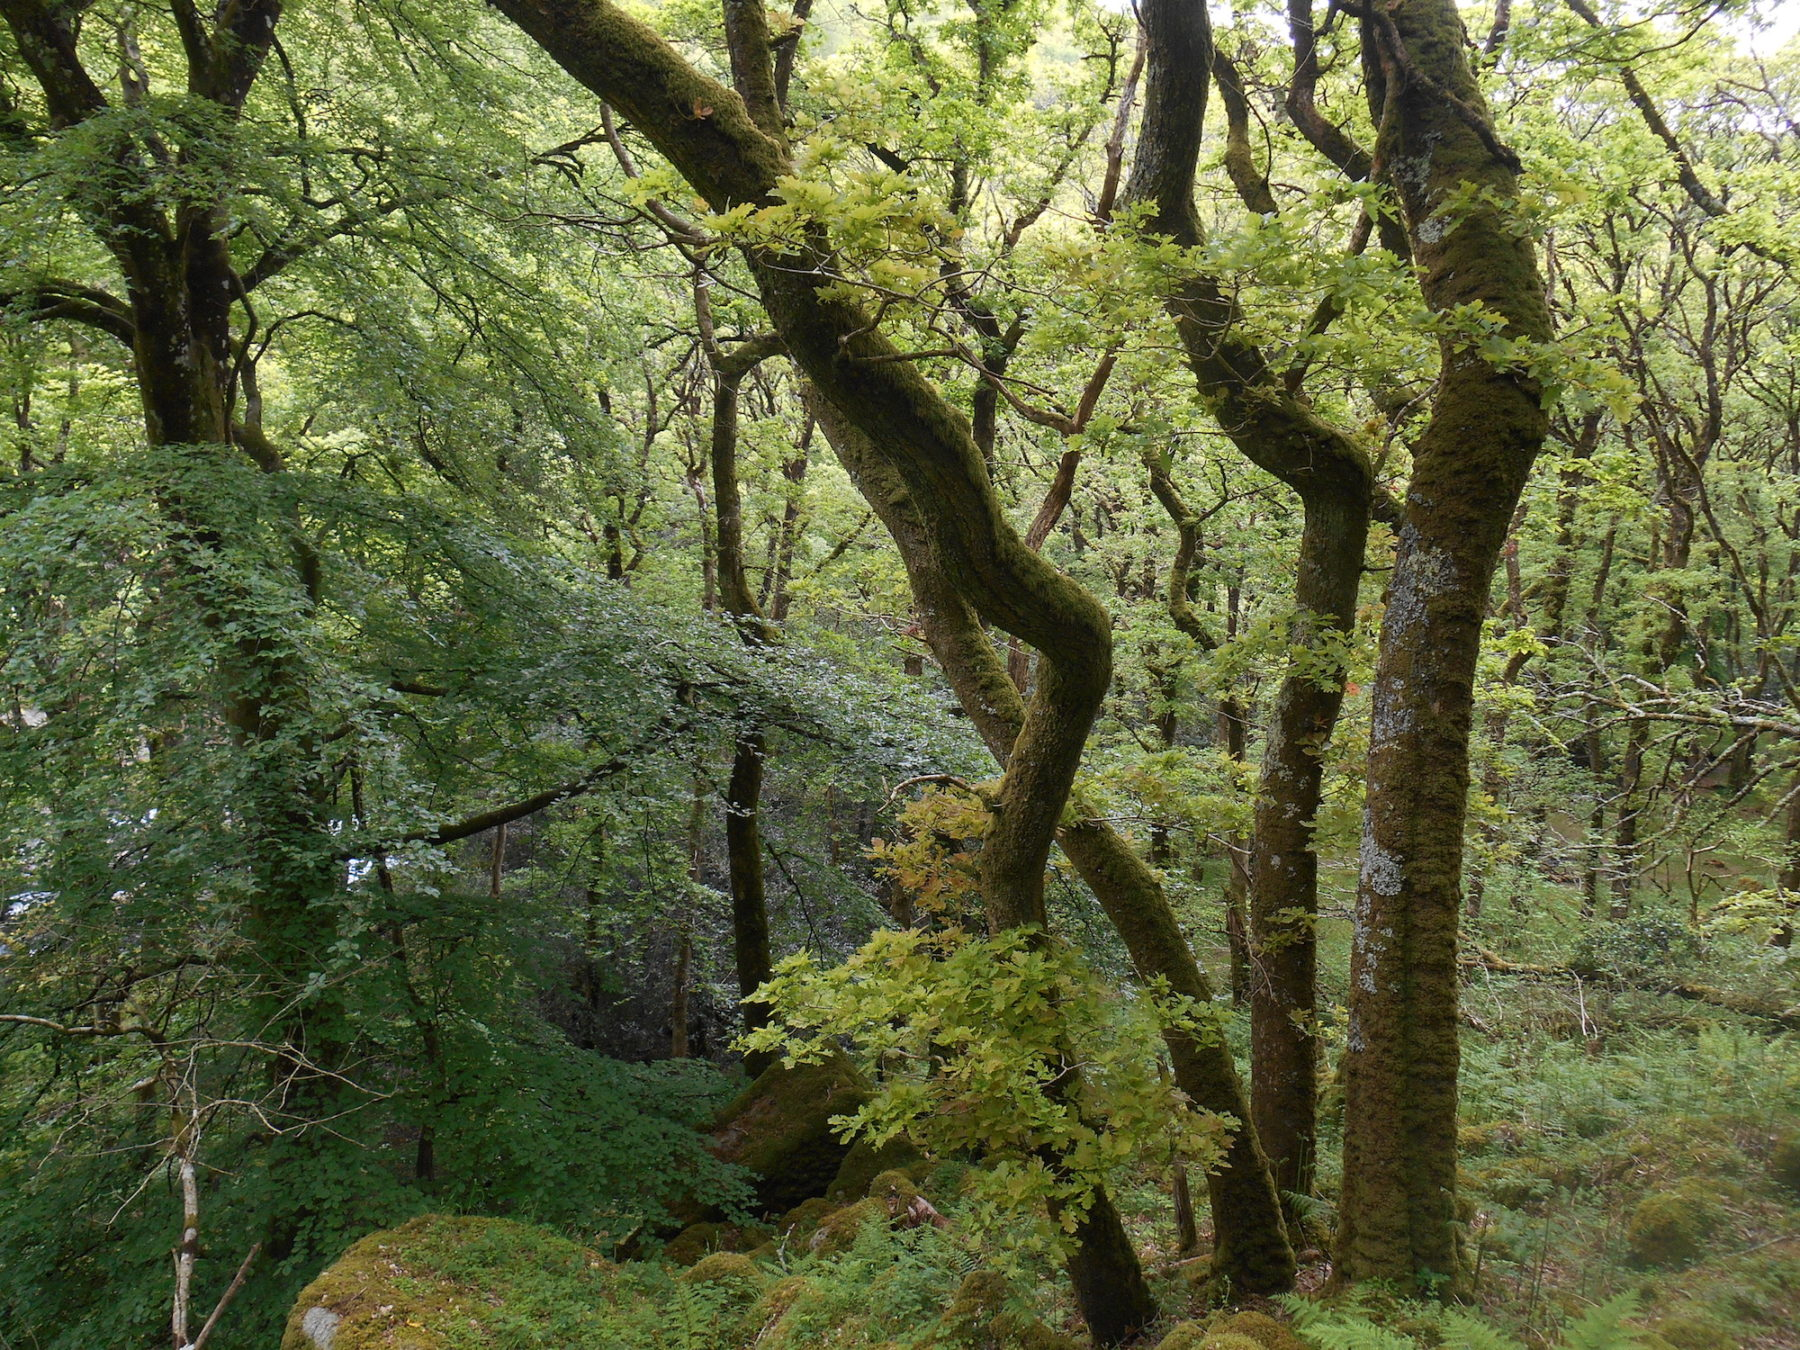 Photograph of the woodland at White Wood